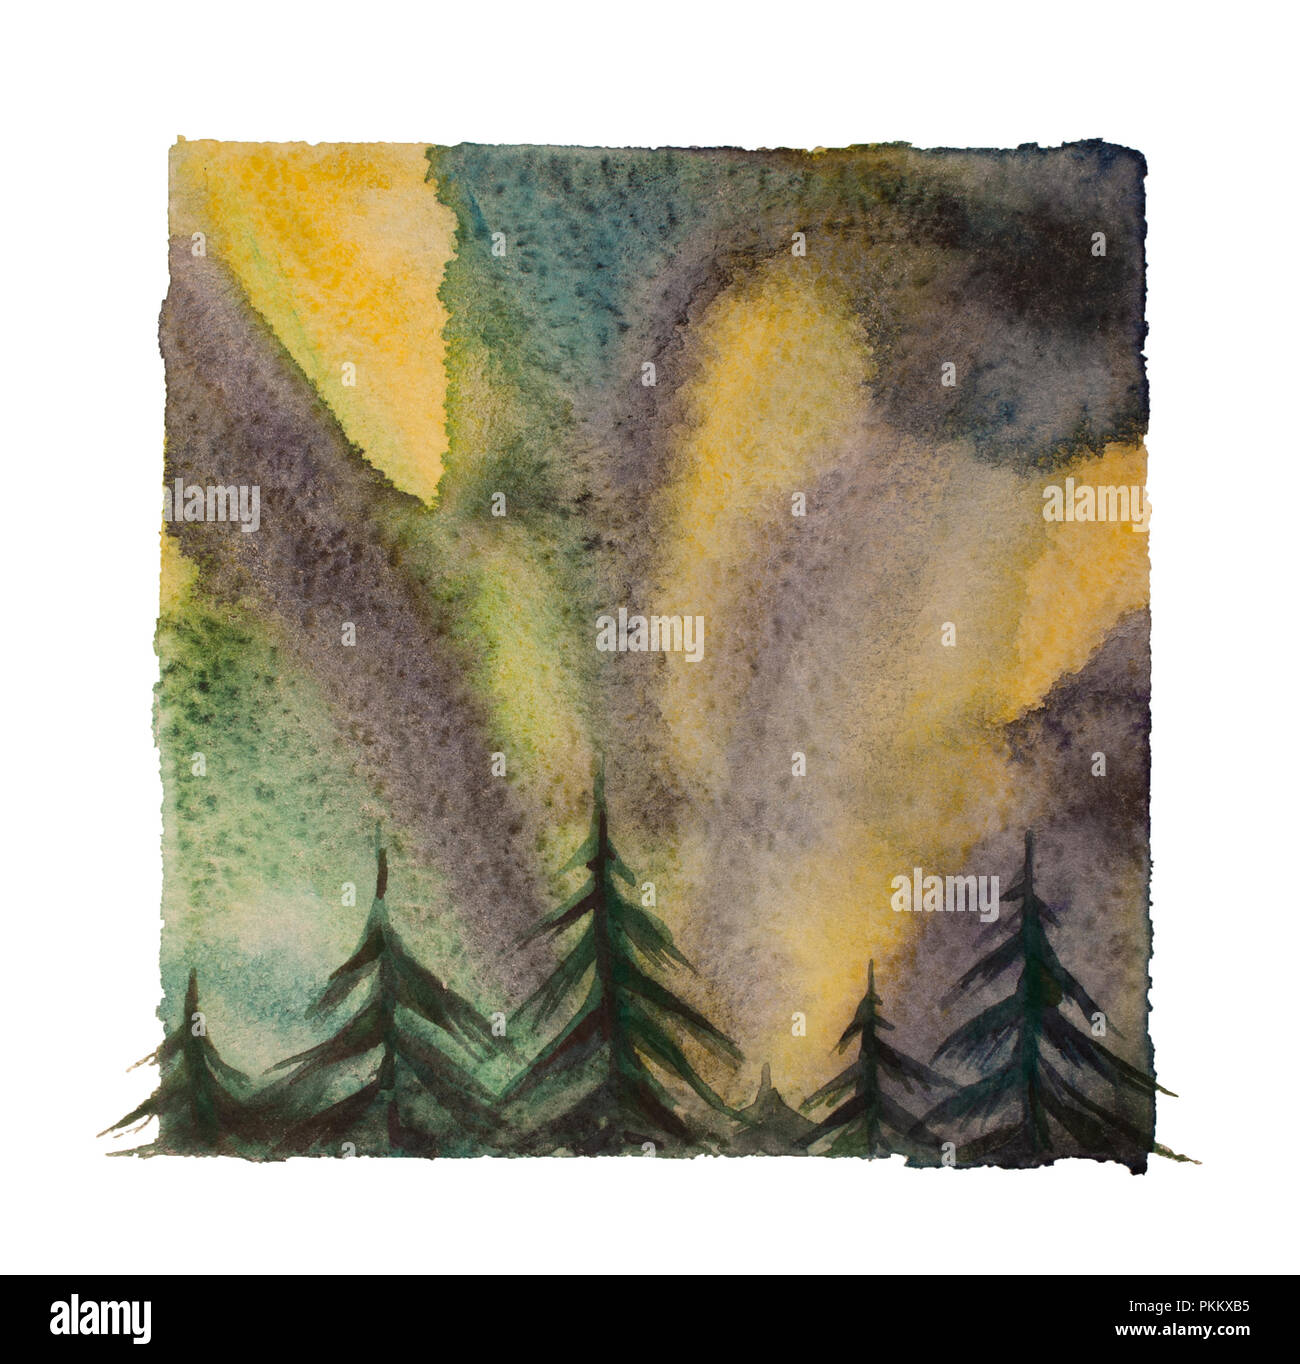 Watercolor northern lights, isolated north sky at night illustration - Stock Image